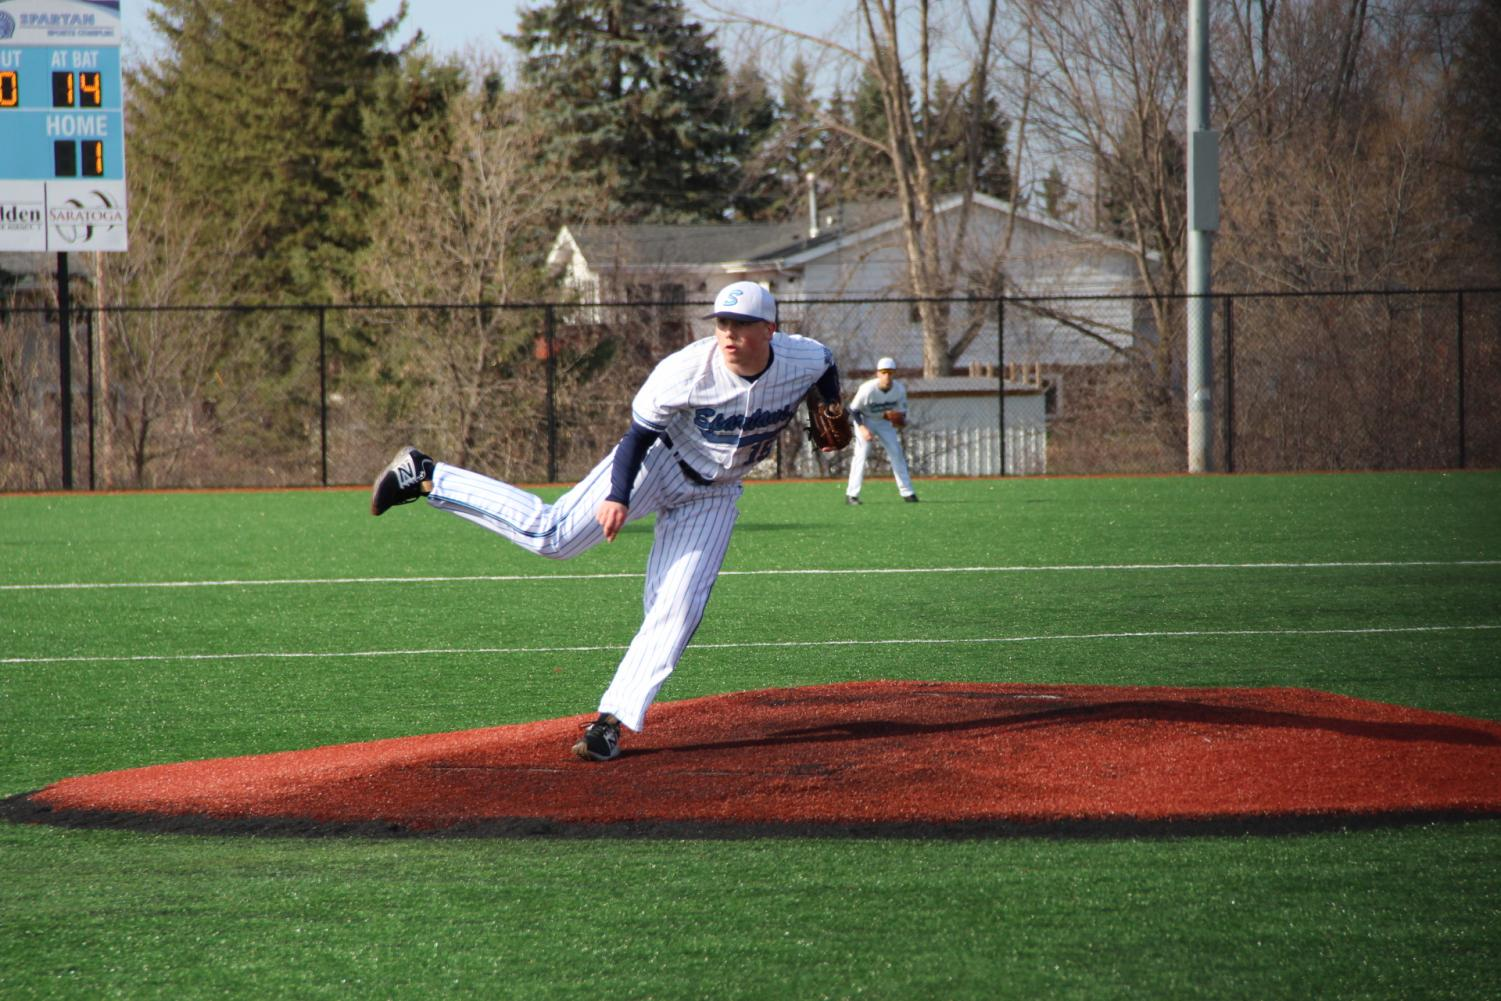 Senior Brandon Wing pitches on Thursday May 3 against the Marshall Hilltoppers at the NBC Sports Complex.